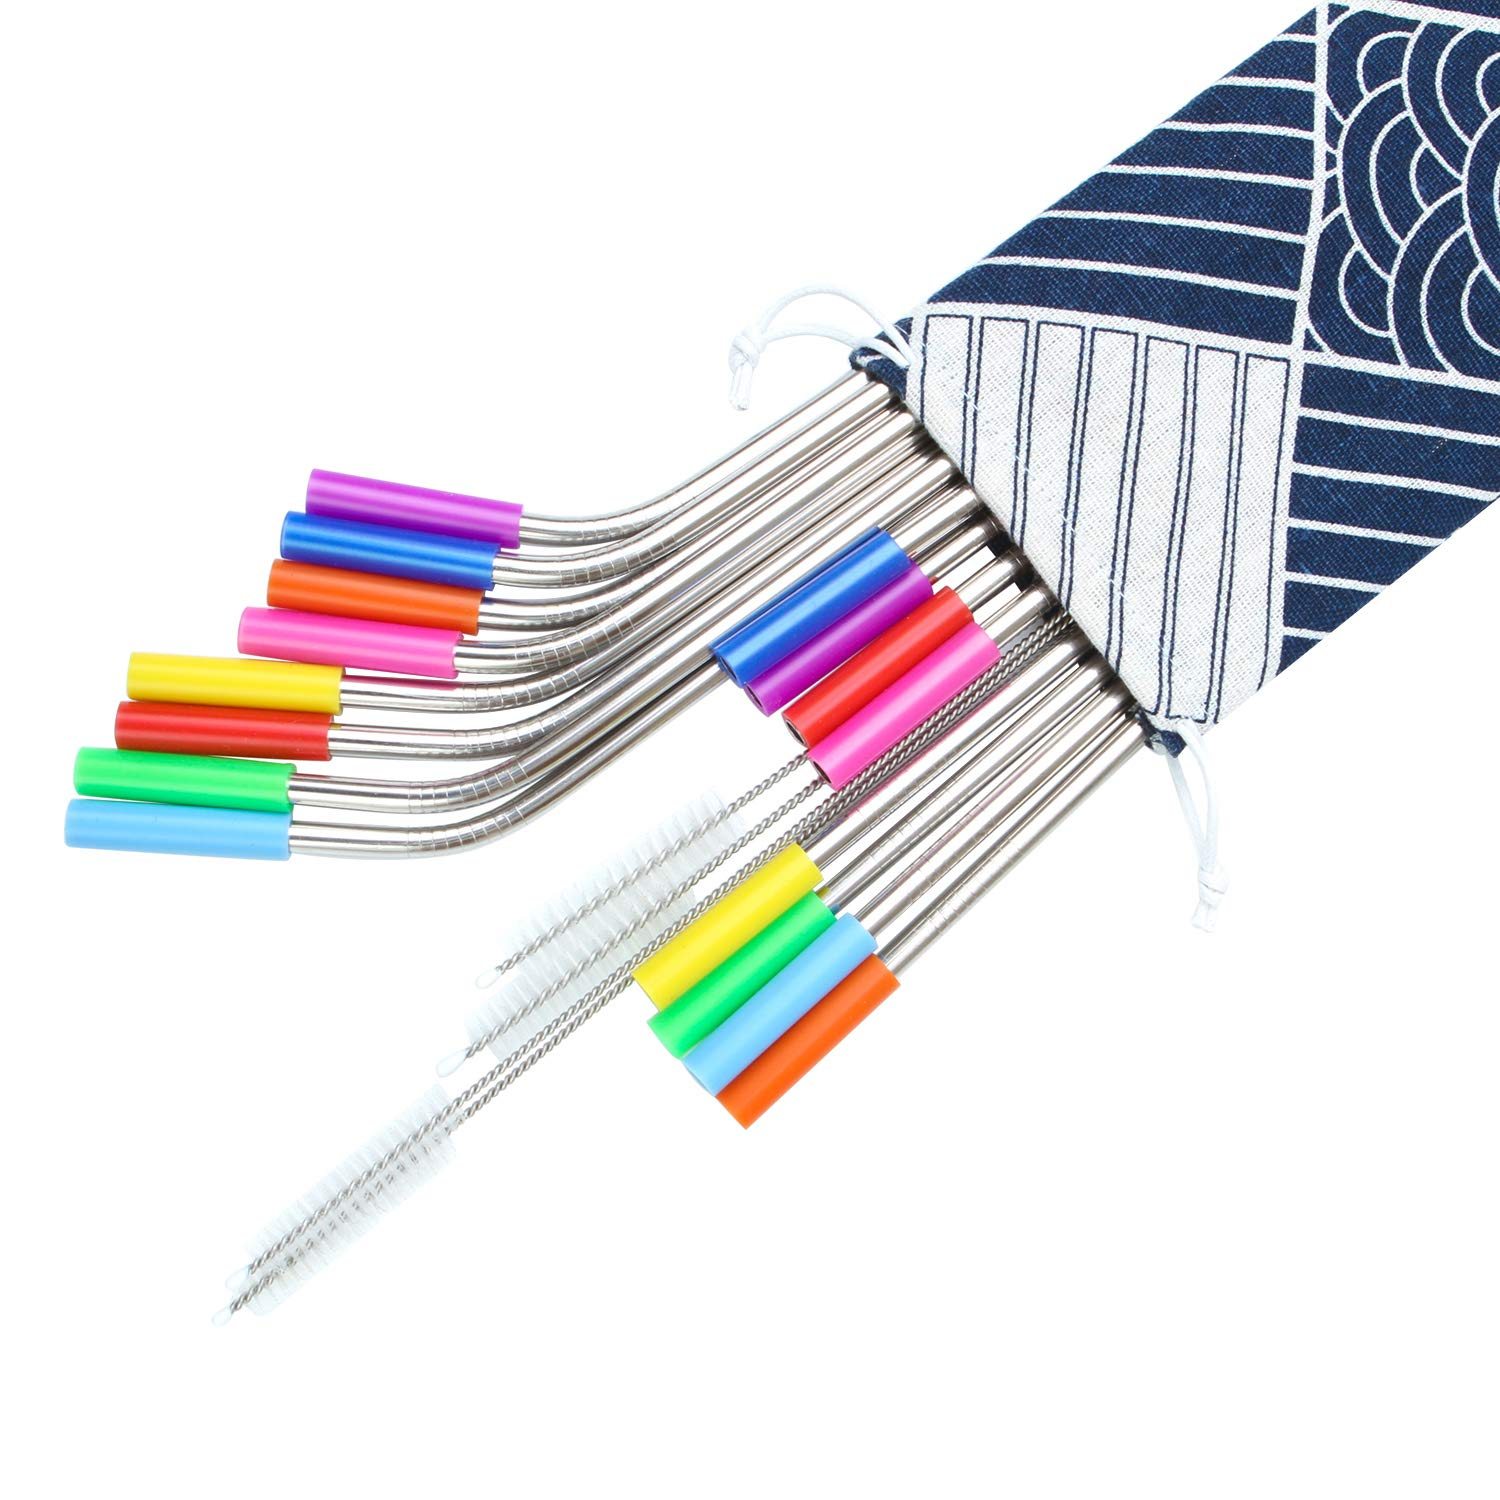 16 Pack Multicolored Silicone and Straw Carrying Case 16 Pieces Stainless Steel Straws 8.5 Inch and 10.5 Inch Reusable Drinking Metal Bent and Straight Straws with 4 Pack Cleaning Brushes